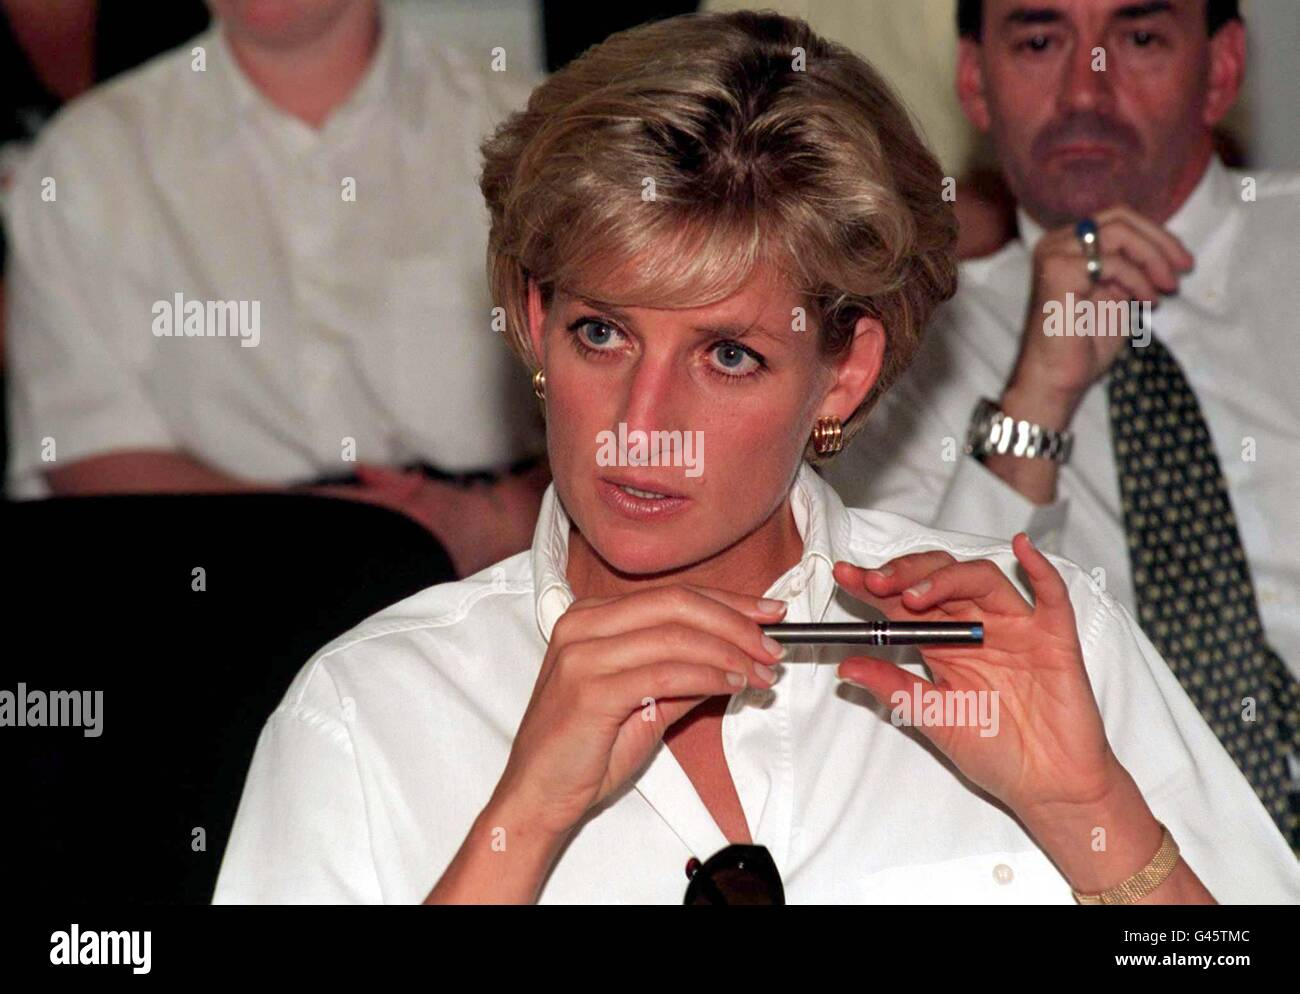 Diana, Princess of Wales, listens intensely as she attends an engagement in the Angolan capital of Luanda today - Stock Image